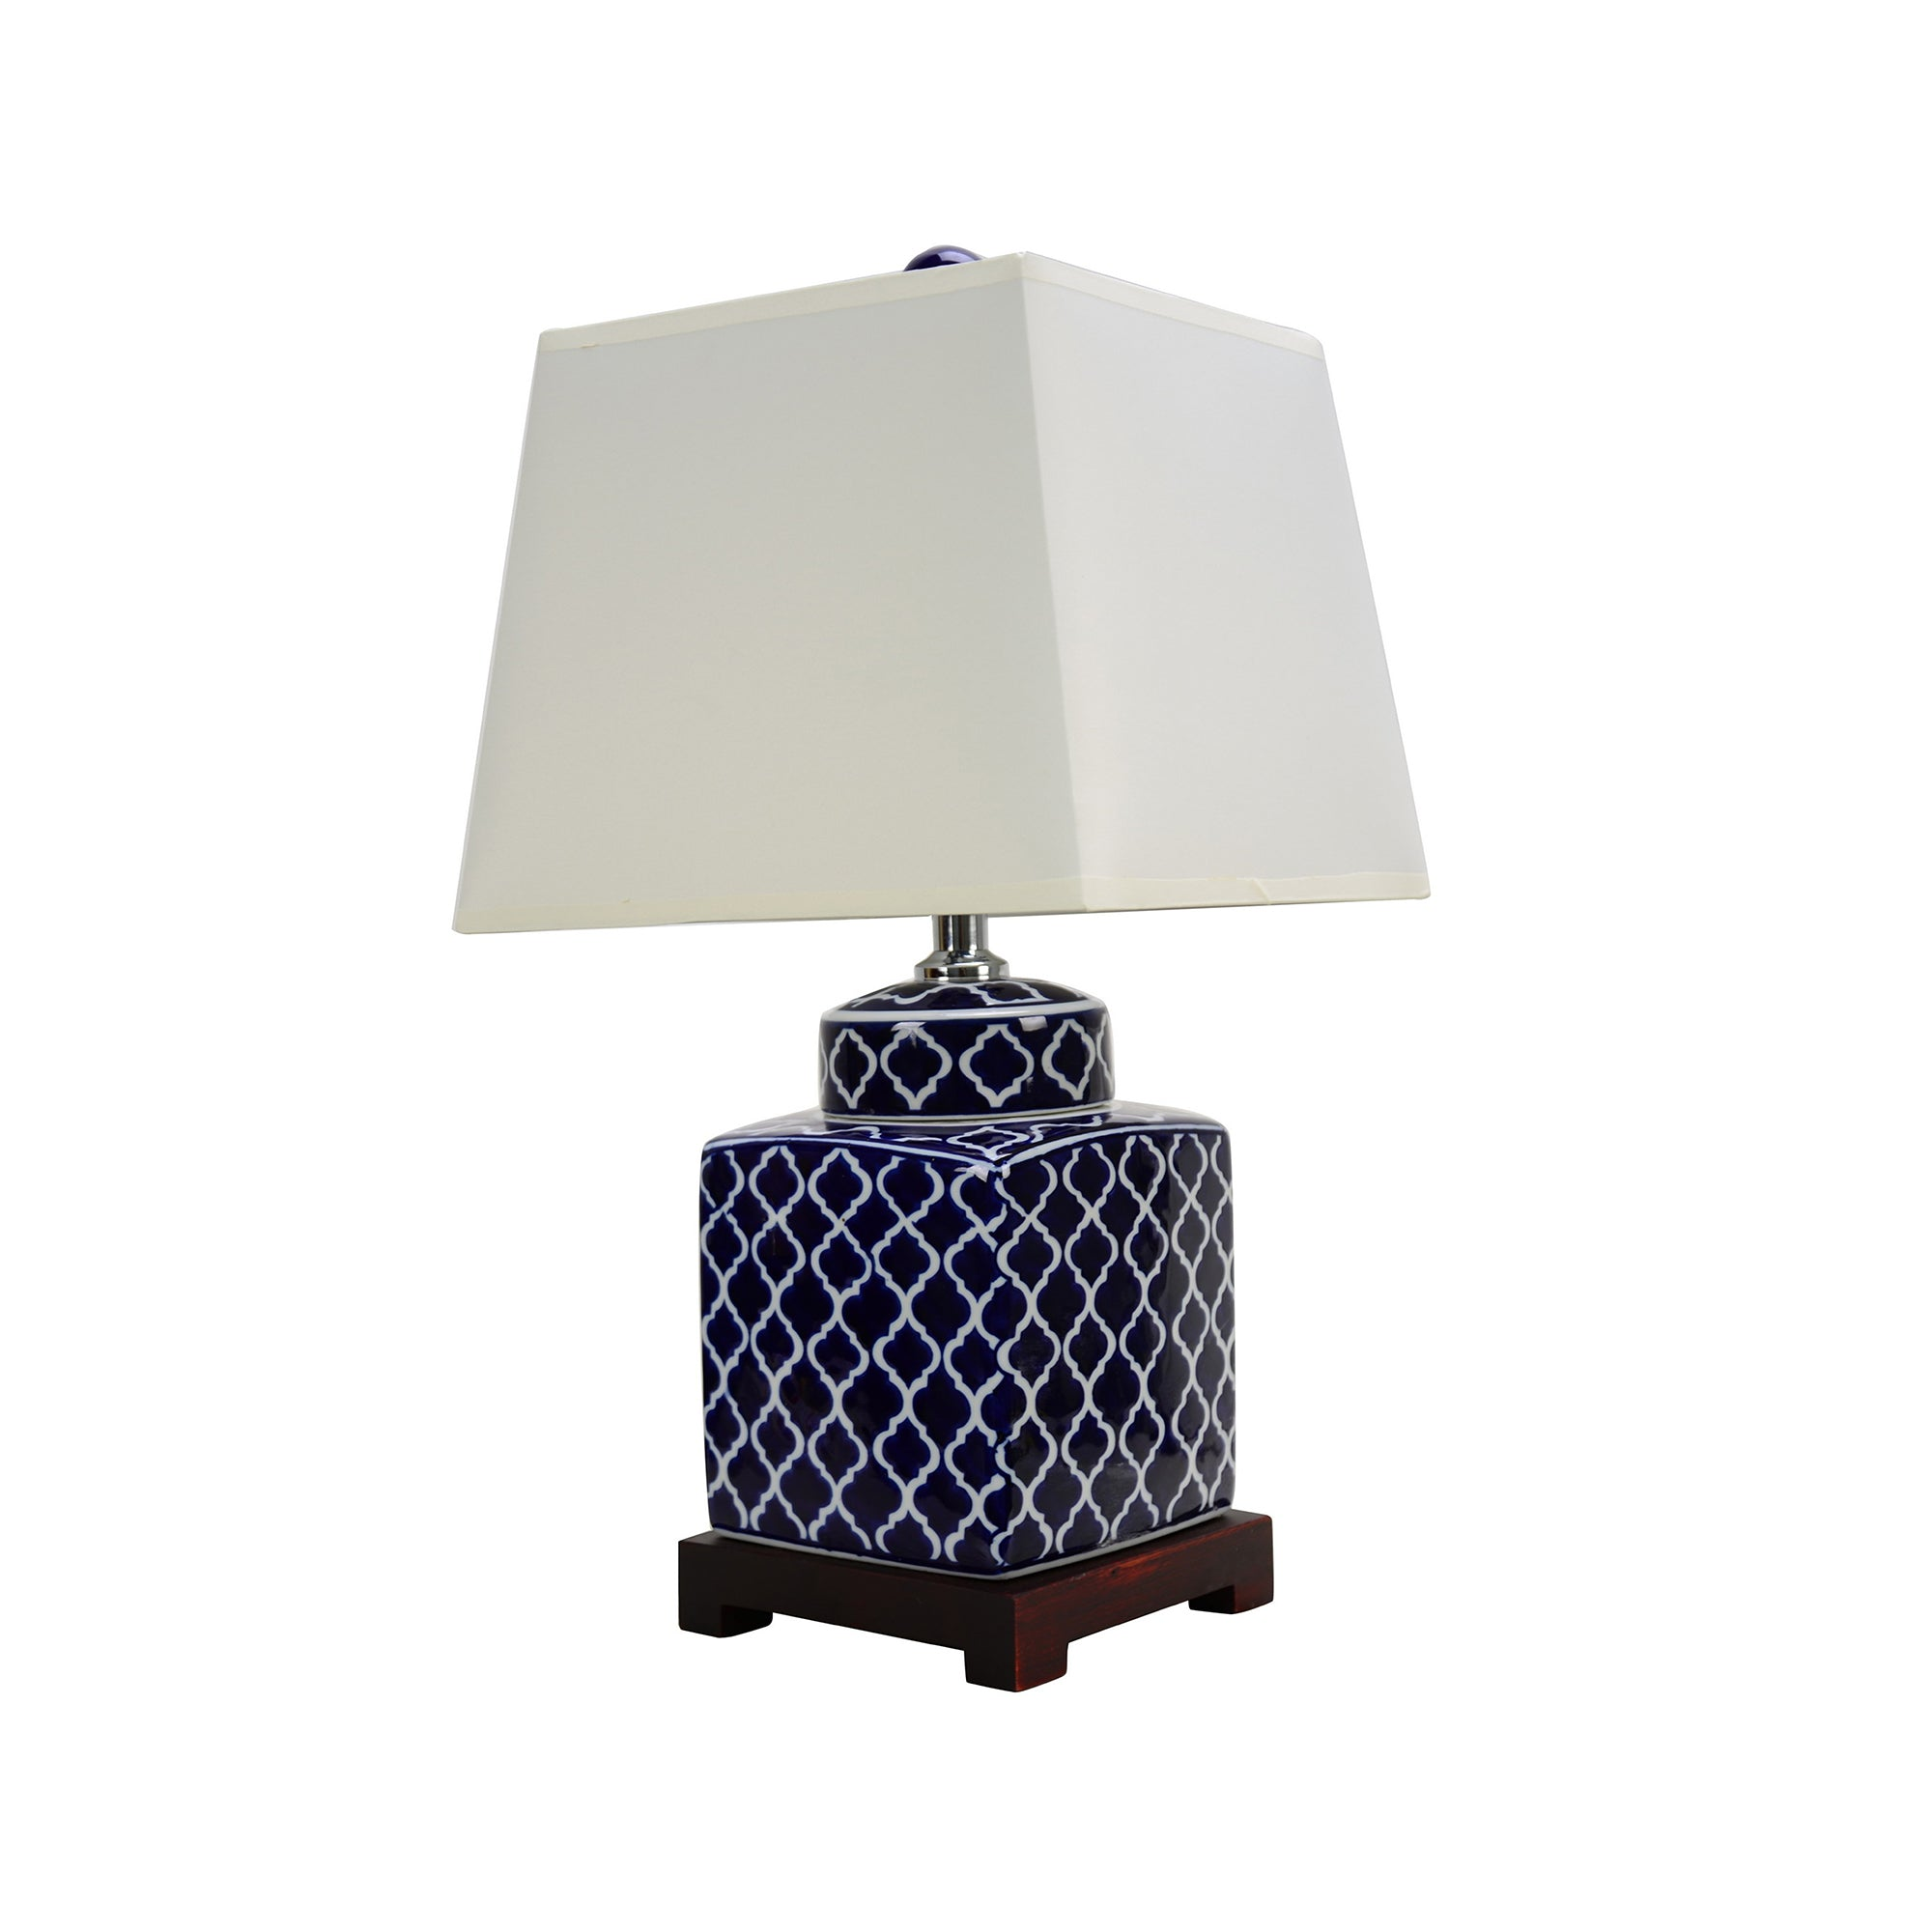 Dark blue quatrefoil motif pattern body with a white empire square-shaped shade